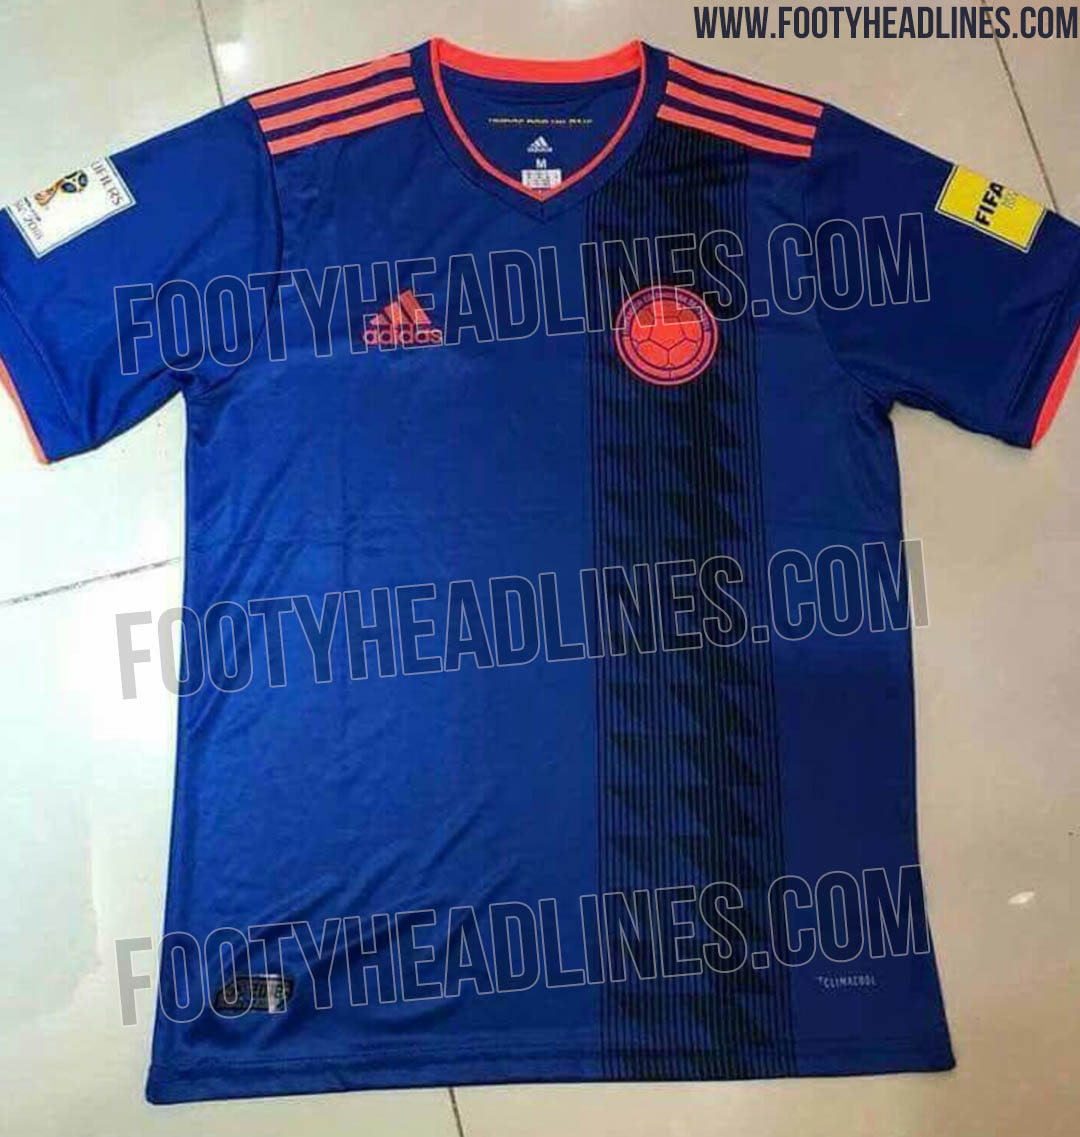 Colombia 2018 World Cup Away Kit Leaked - Footy Headlines e19c07c2c